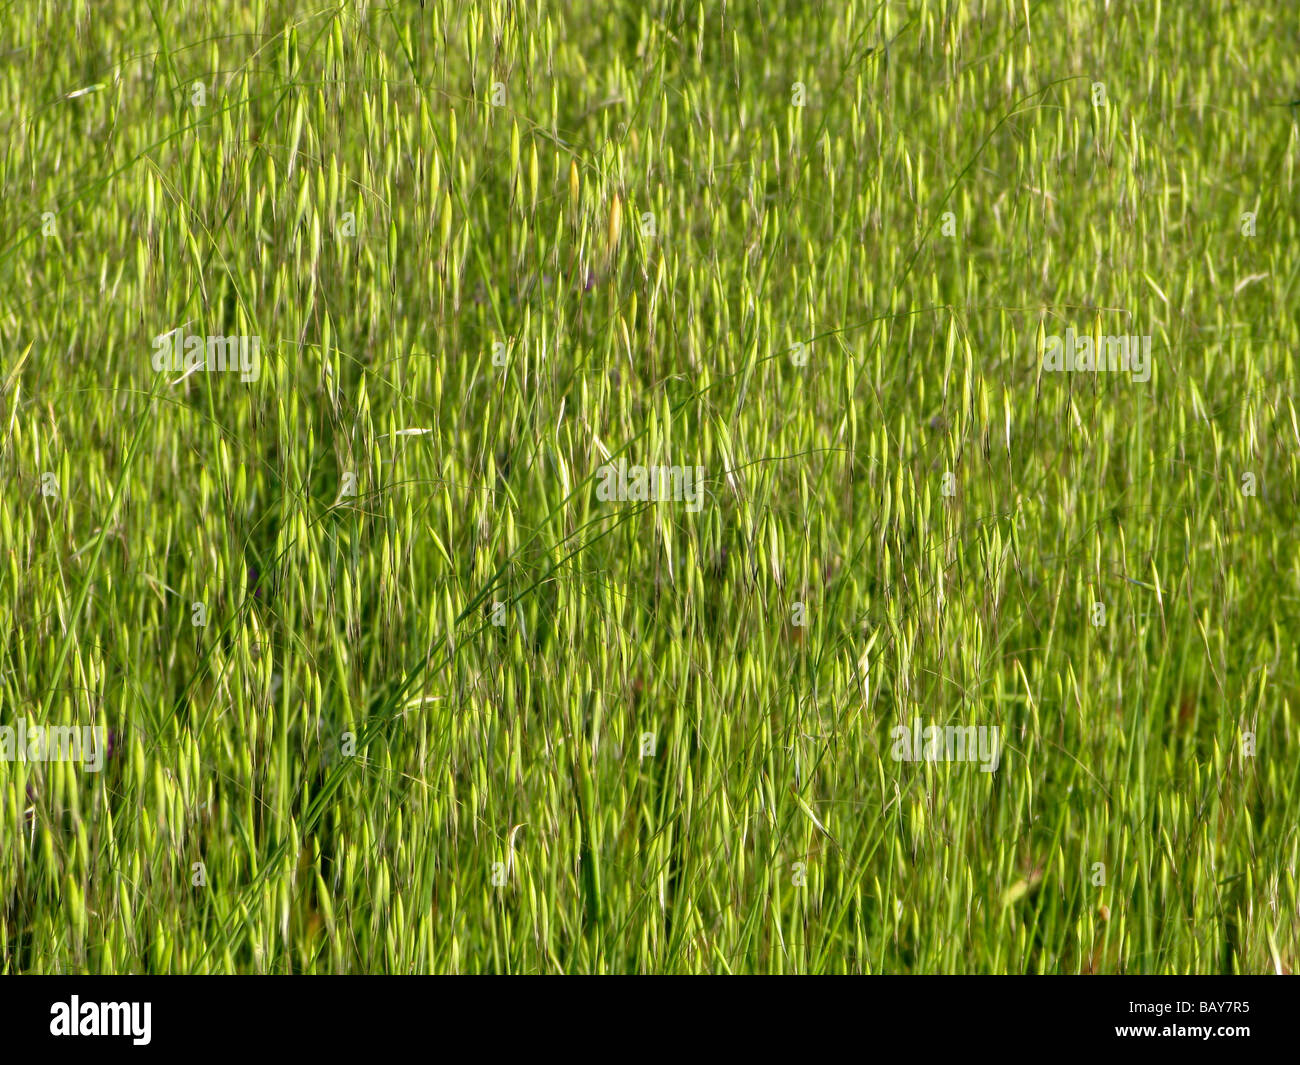 in a Summer field wild Graminaceae used for pasture Stock Photo